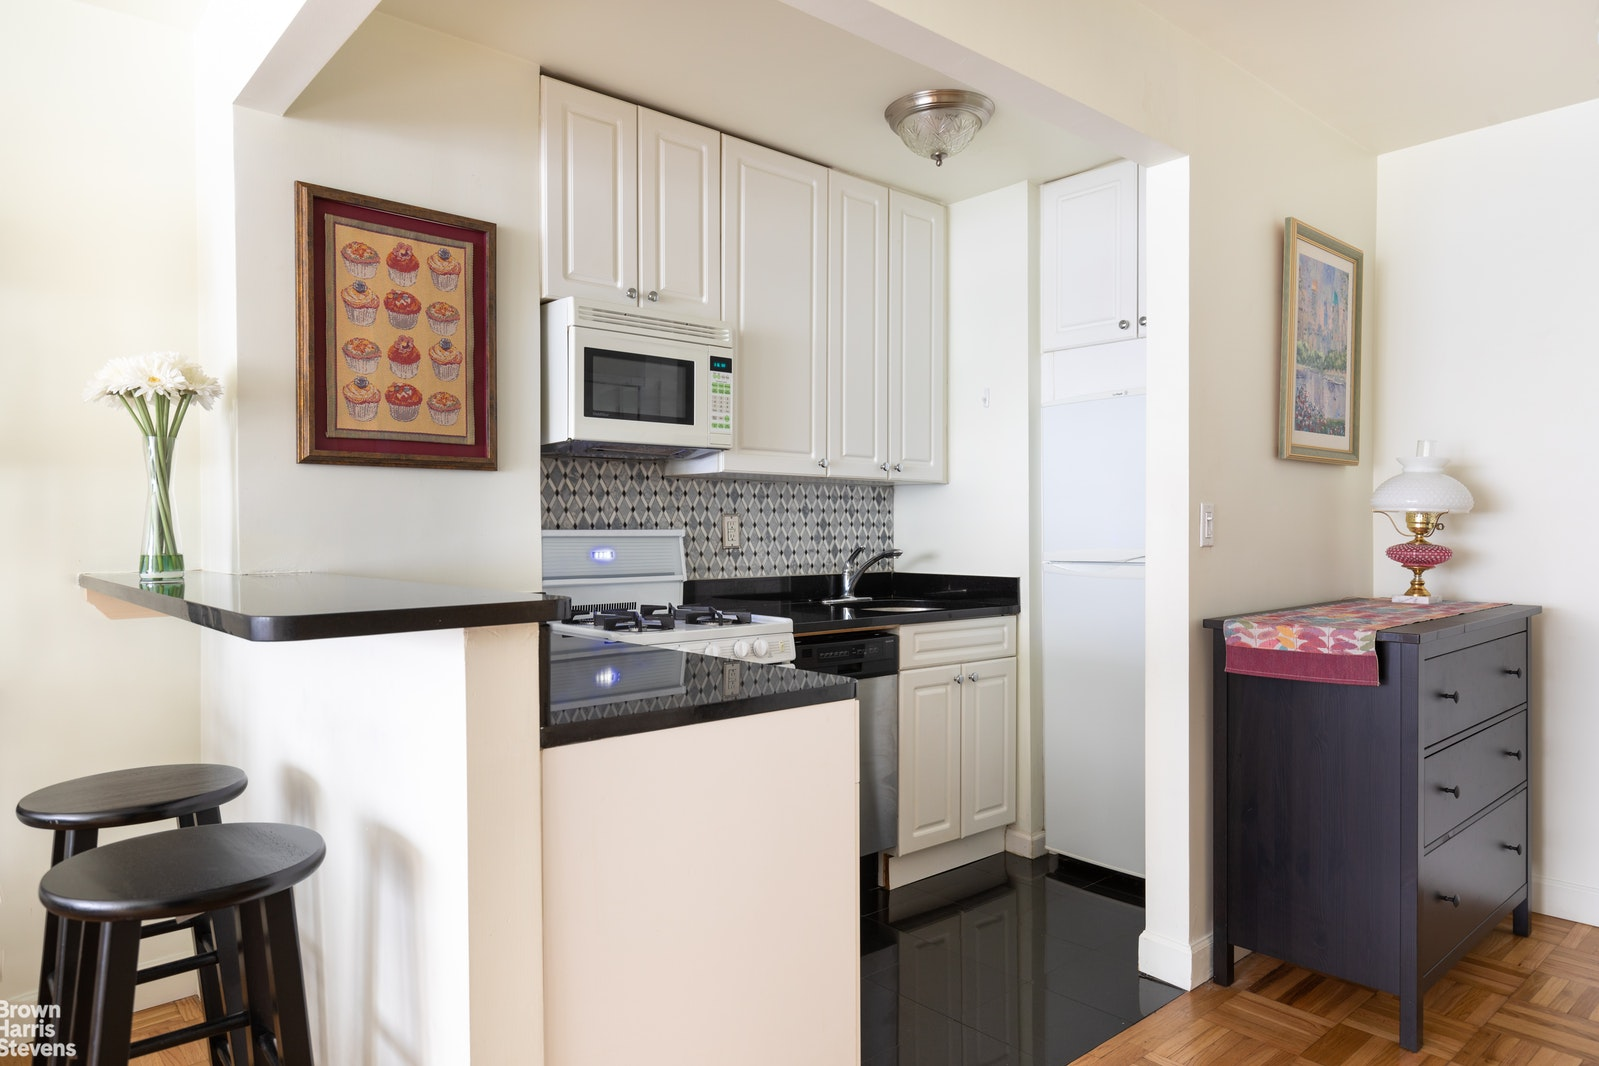 Apartment for sale at 201 East 25th Street, Apt 3C